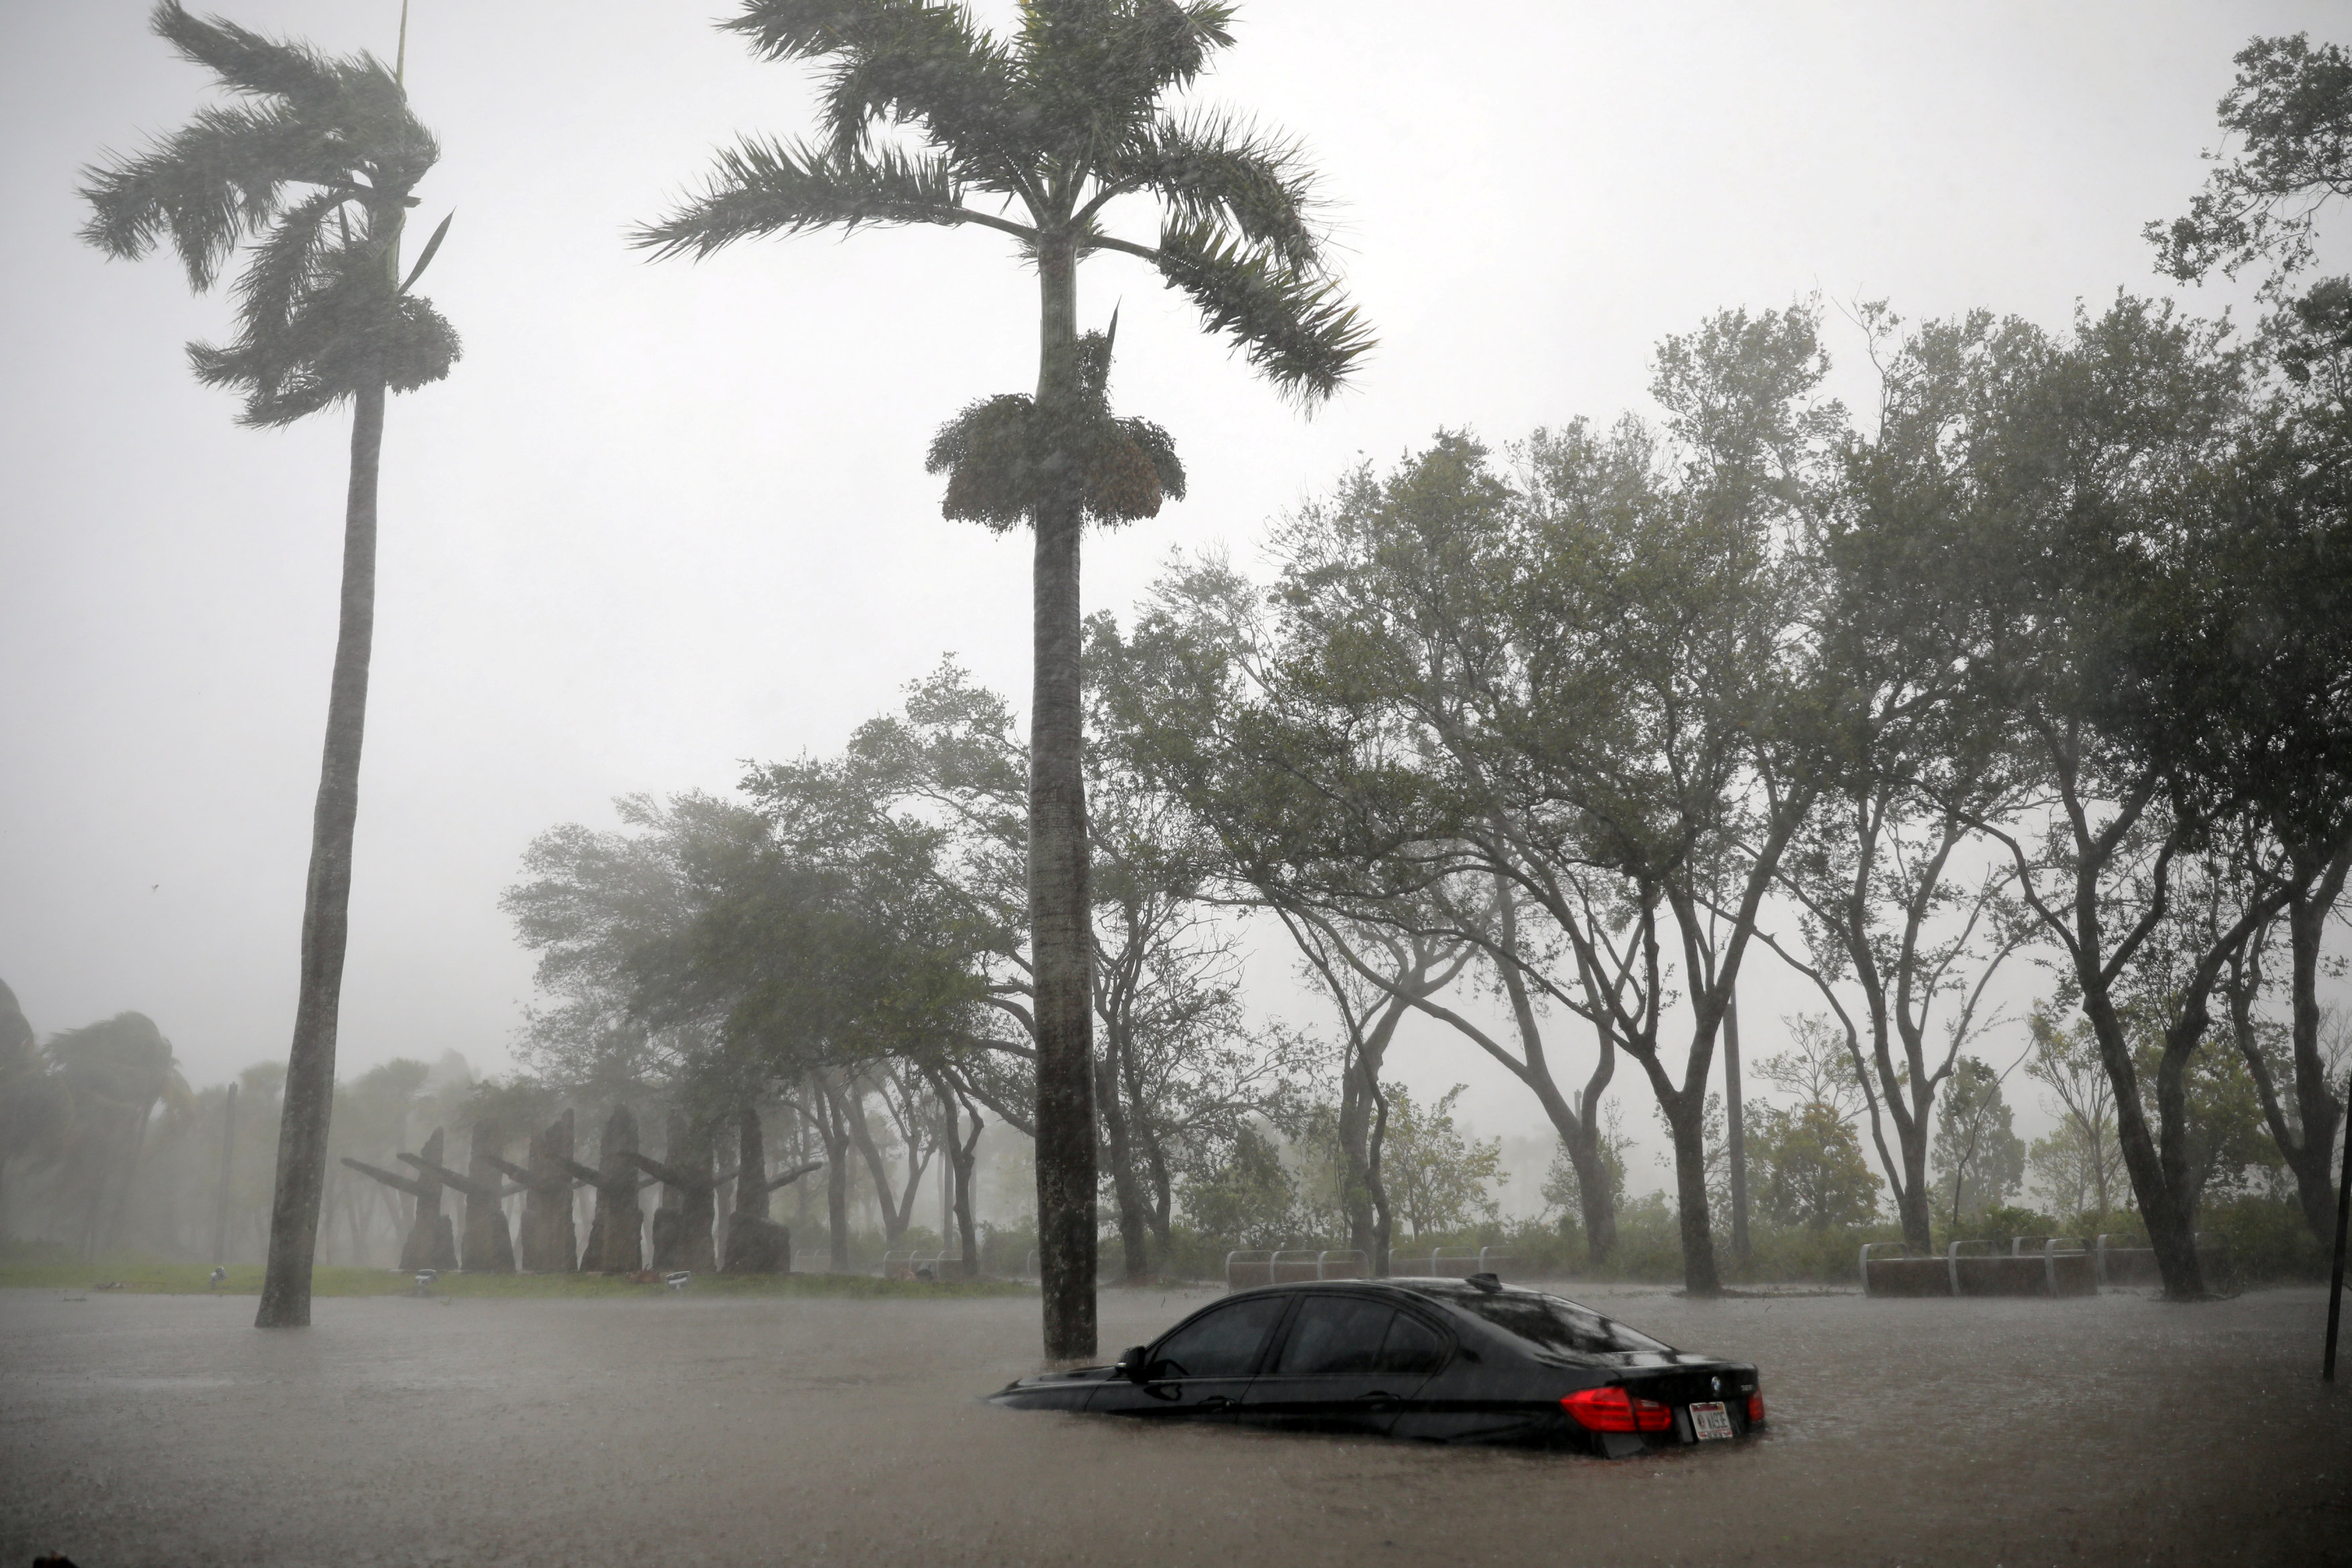 A partially submerged car is seen at a flooded area in Coconut Grove as Hurricane Irma arrives at south Florida, in Miami, Florida on Sept. 10, 2017. (REUTERS/Carlos Barria)